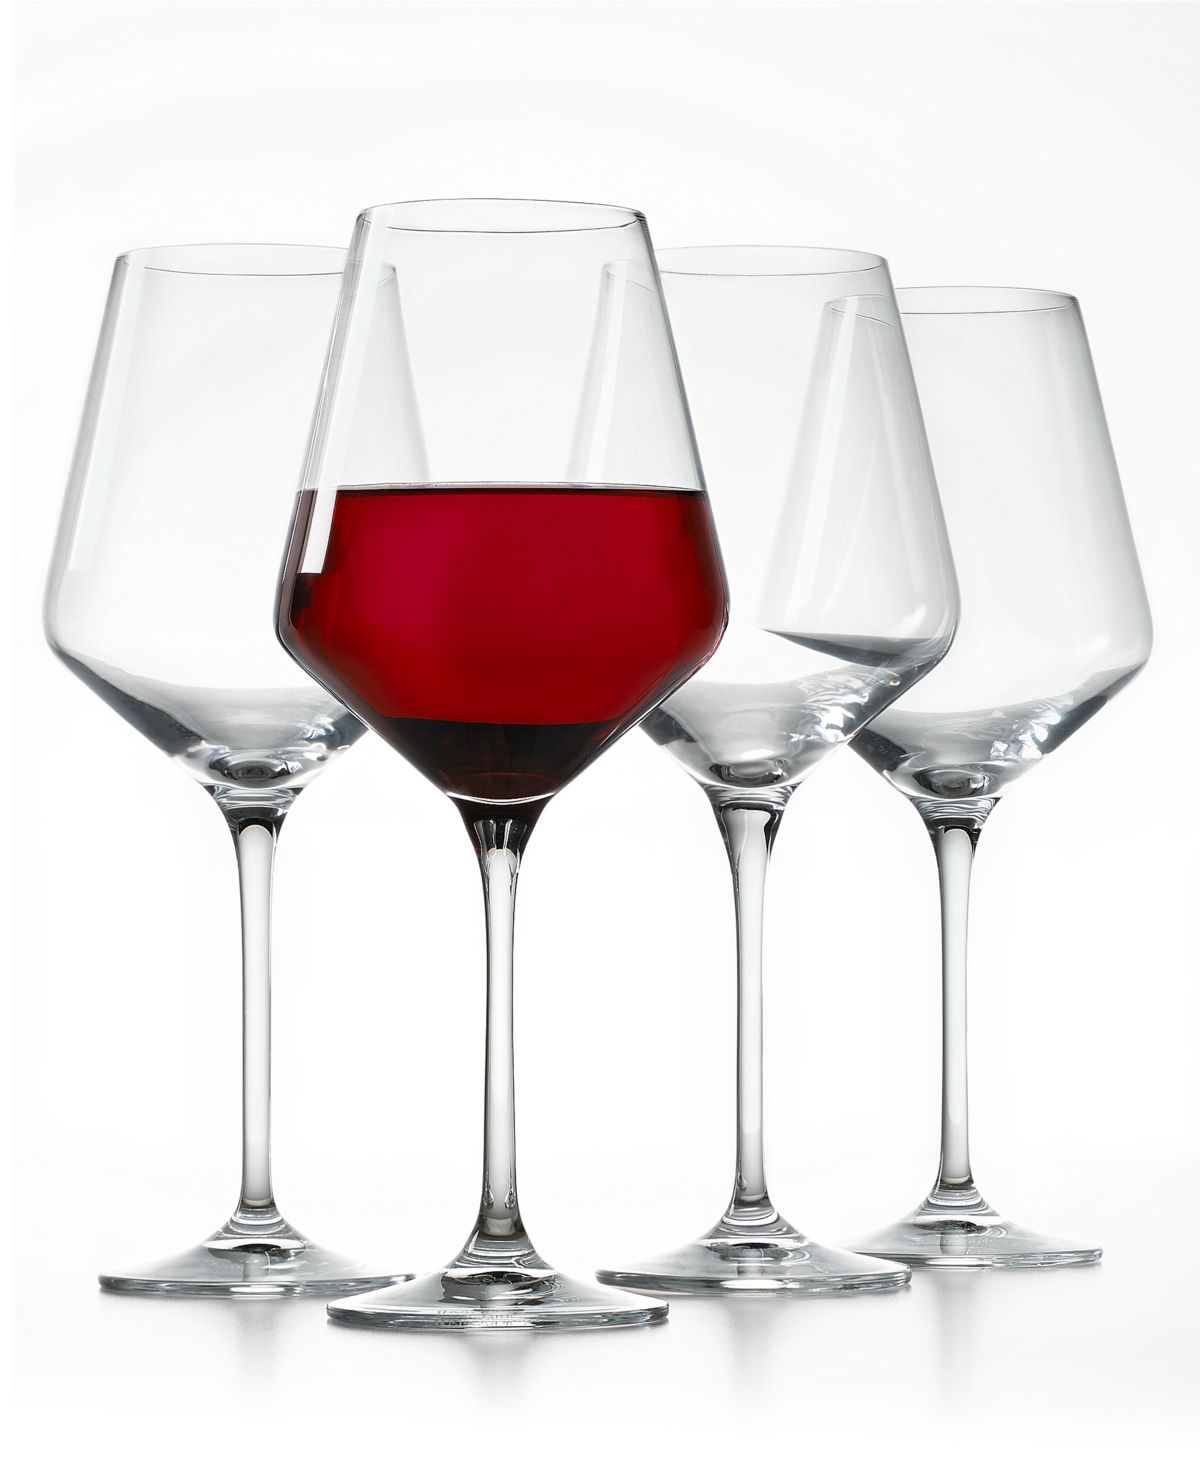 Hotel Collection Glassware Collection Created For Macy S Reviews Home Macy S In 2020 Glassware Collection Hotel Collection Wine Preserver